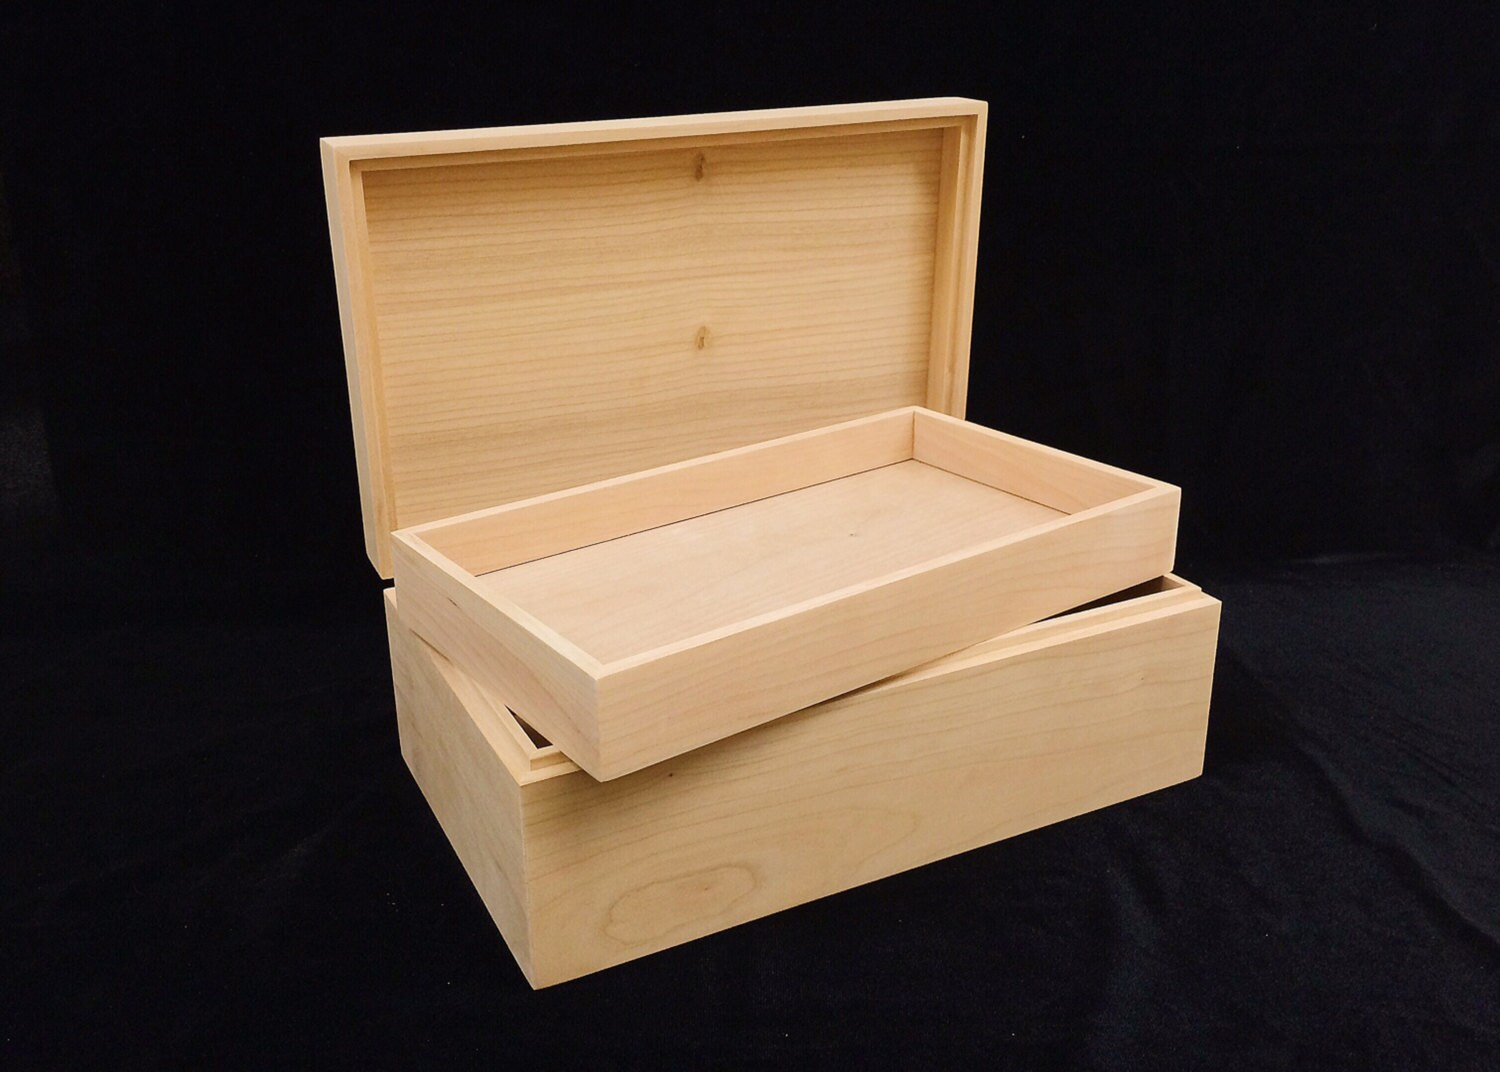 Unfinished Wood Box With Hinges Amp Tray 10 X 6 X 3 3 4